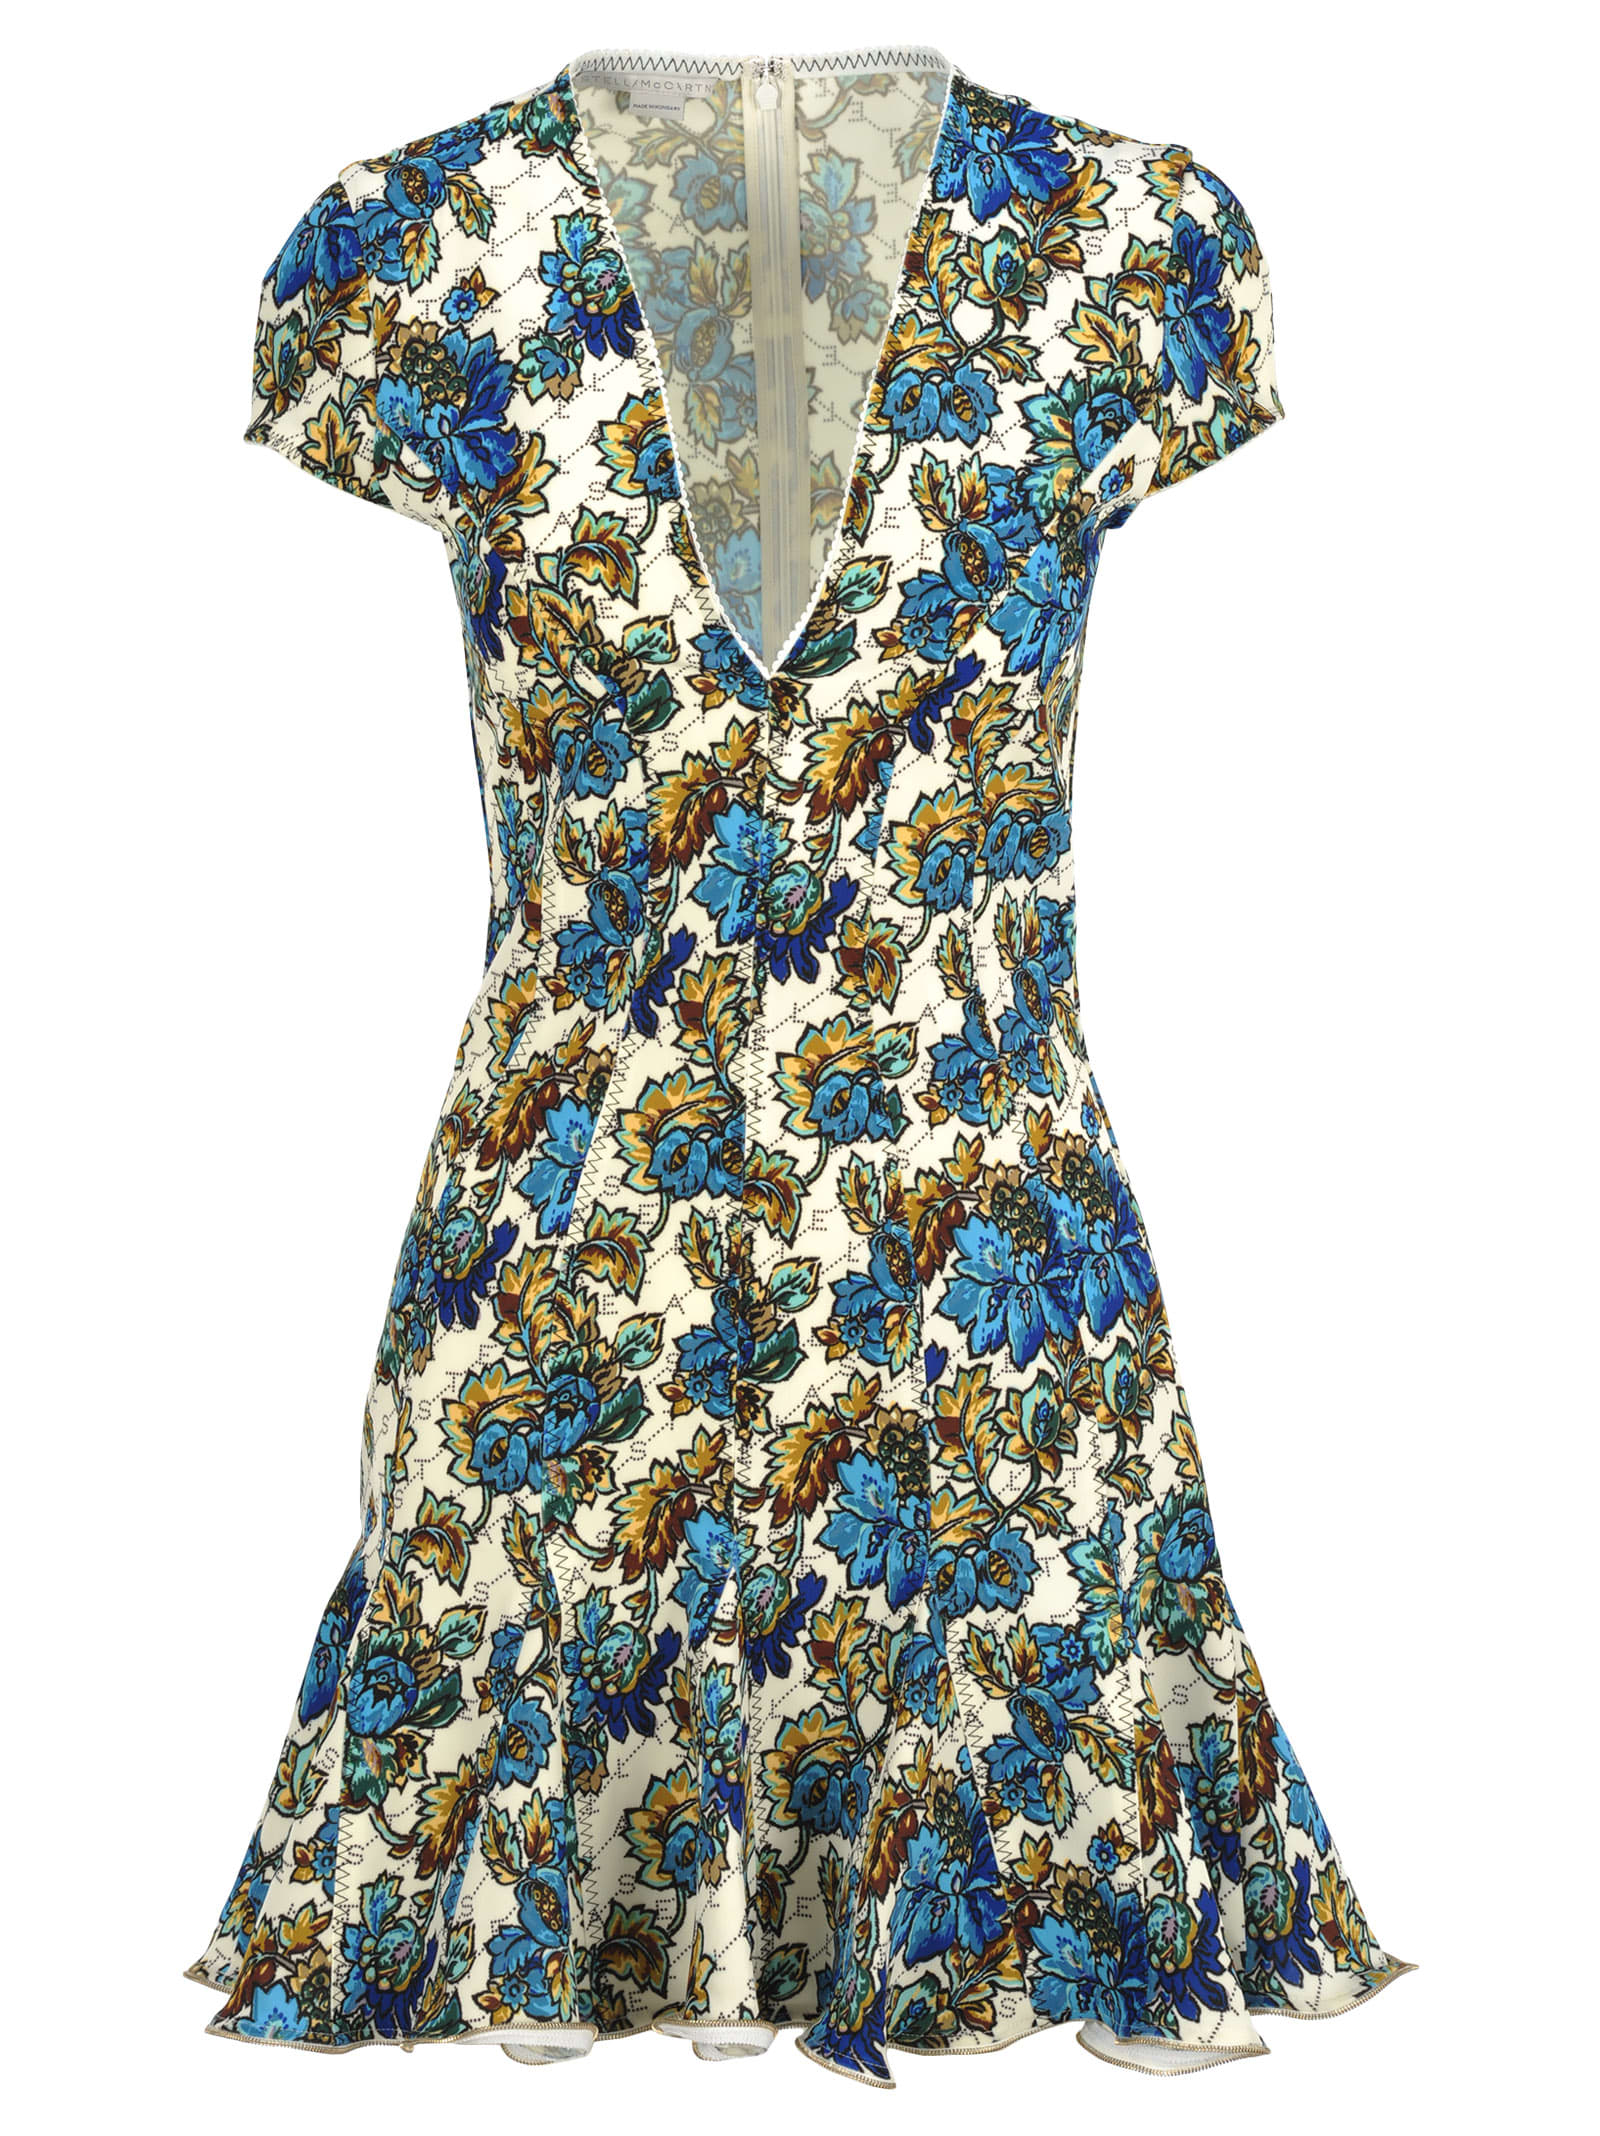 Stella Mccartney Stella Mccartney Floral Print Dress